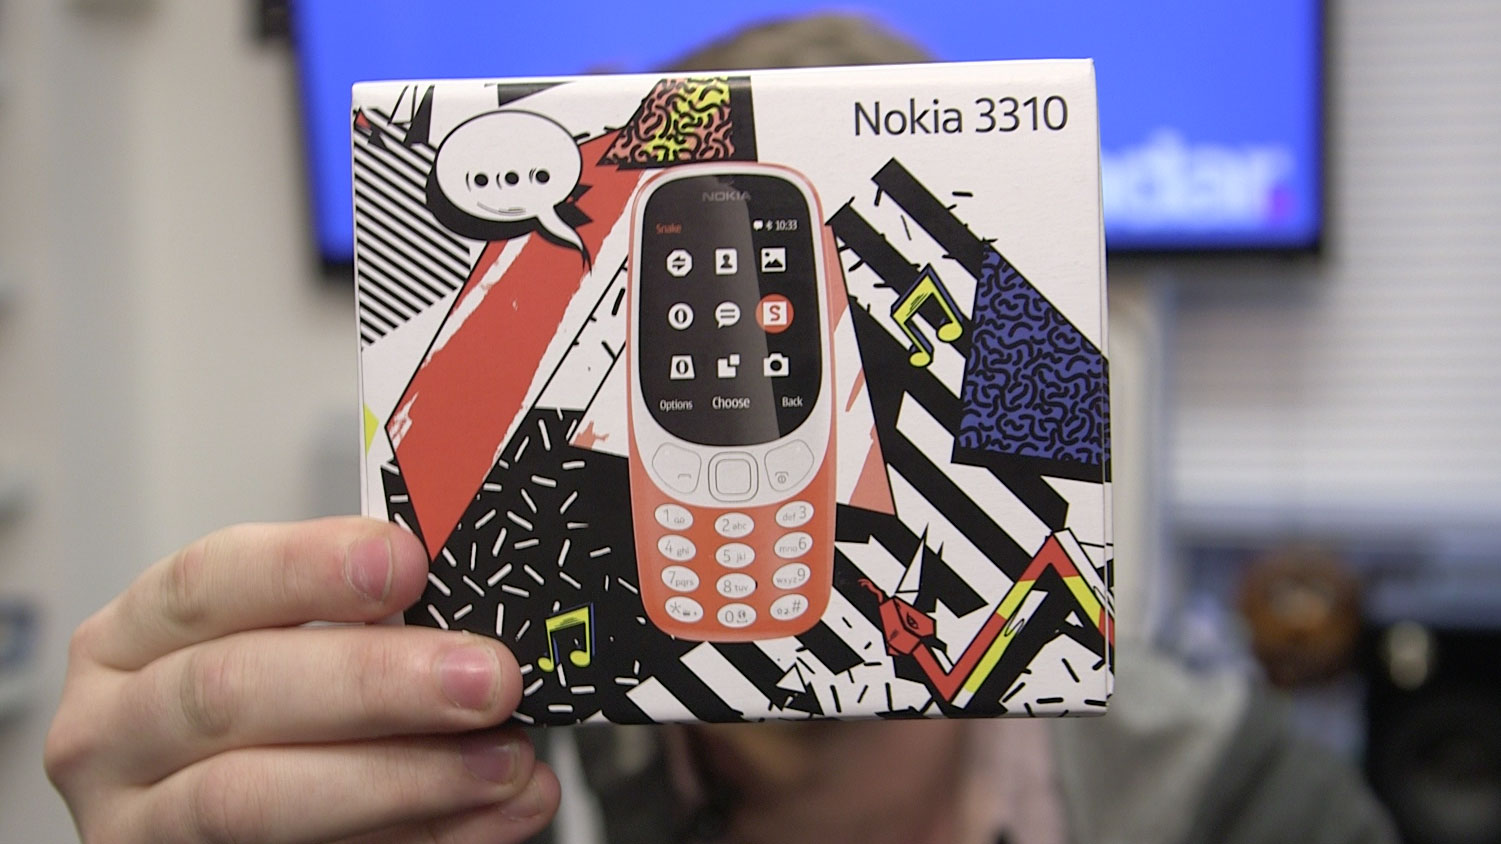 Nokia promises to 'double-down' on retro phone reboots in 2019